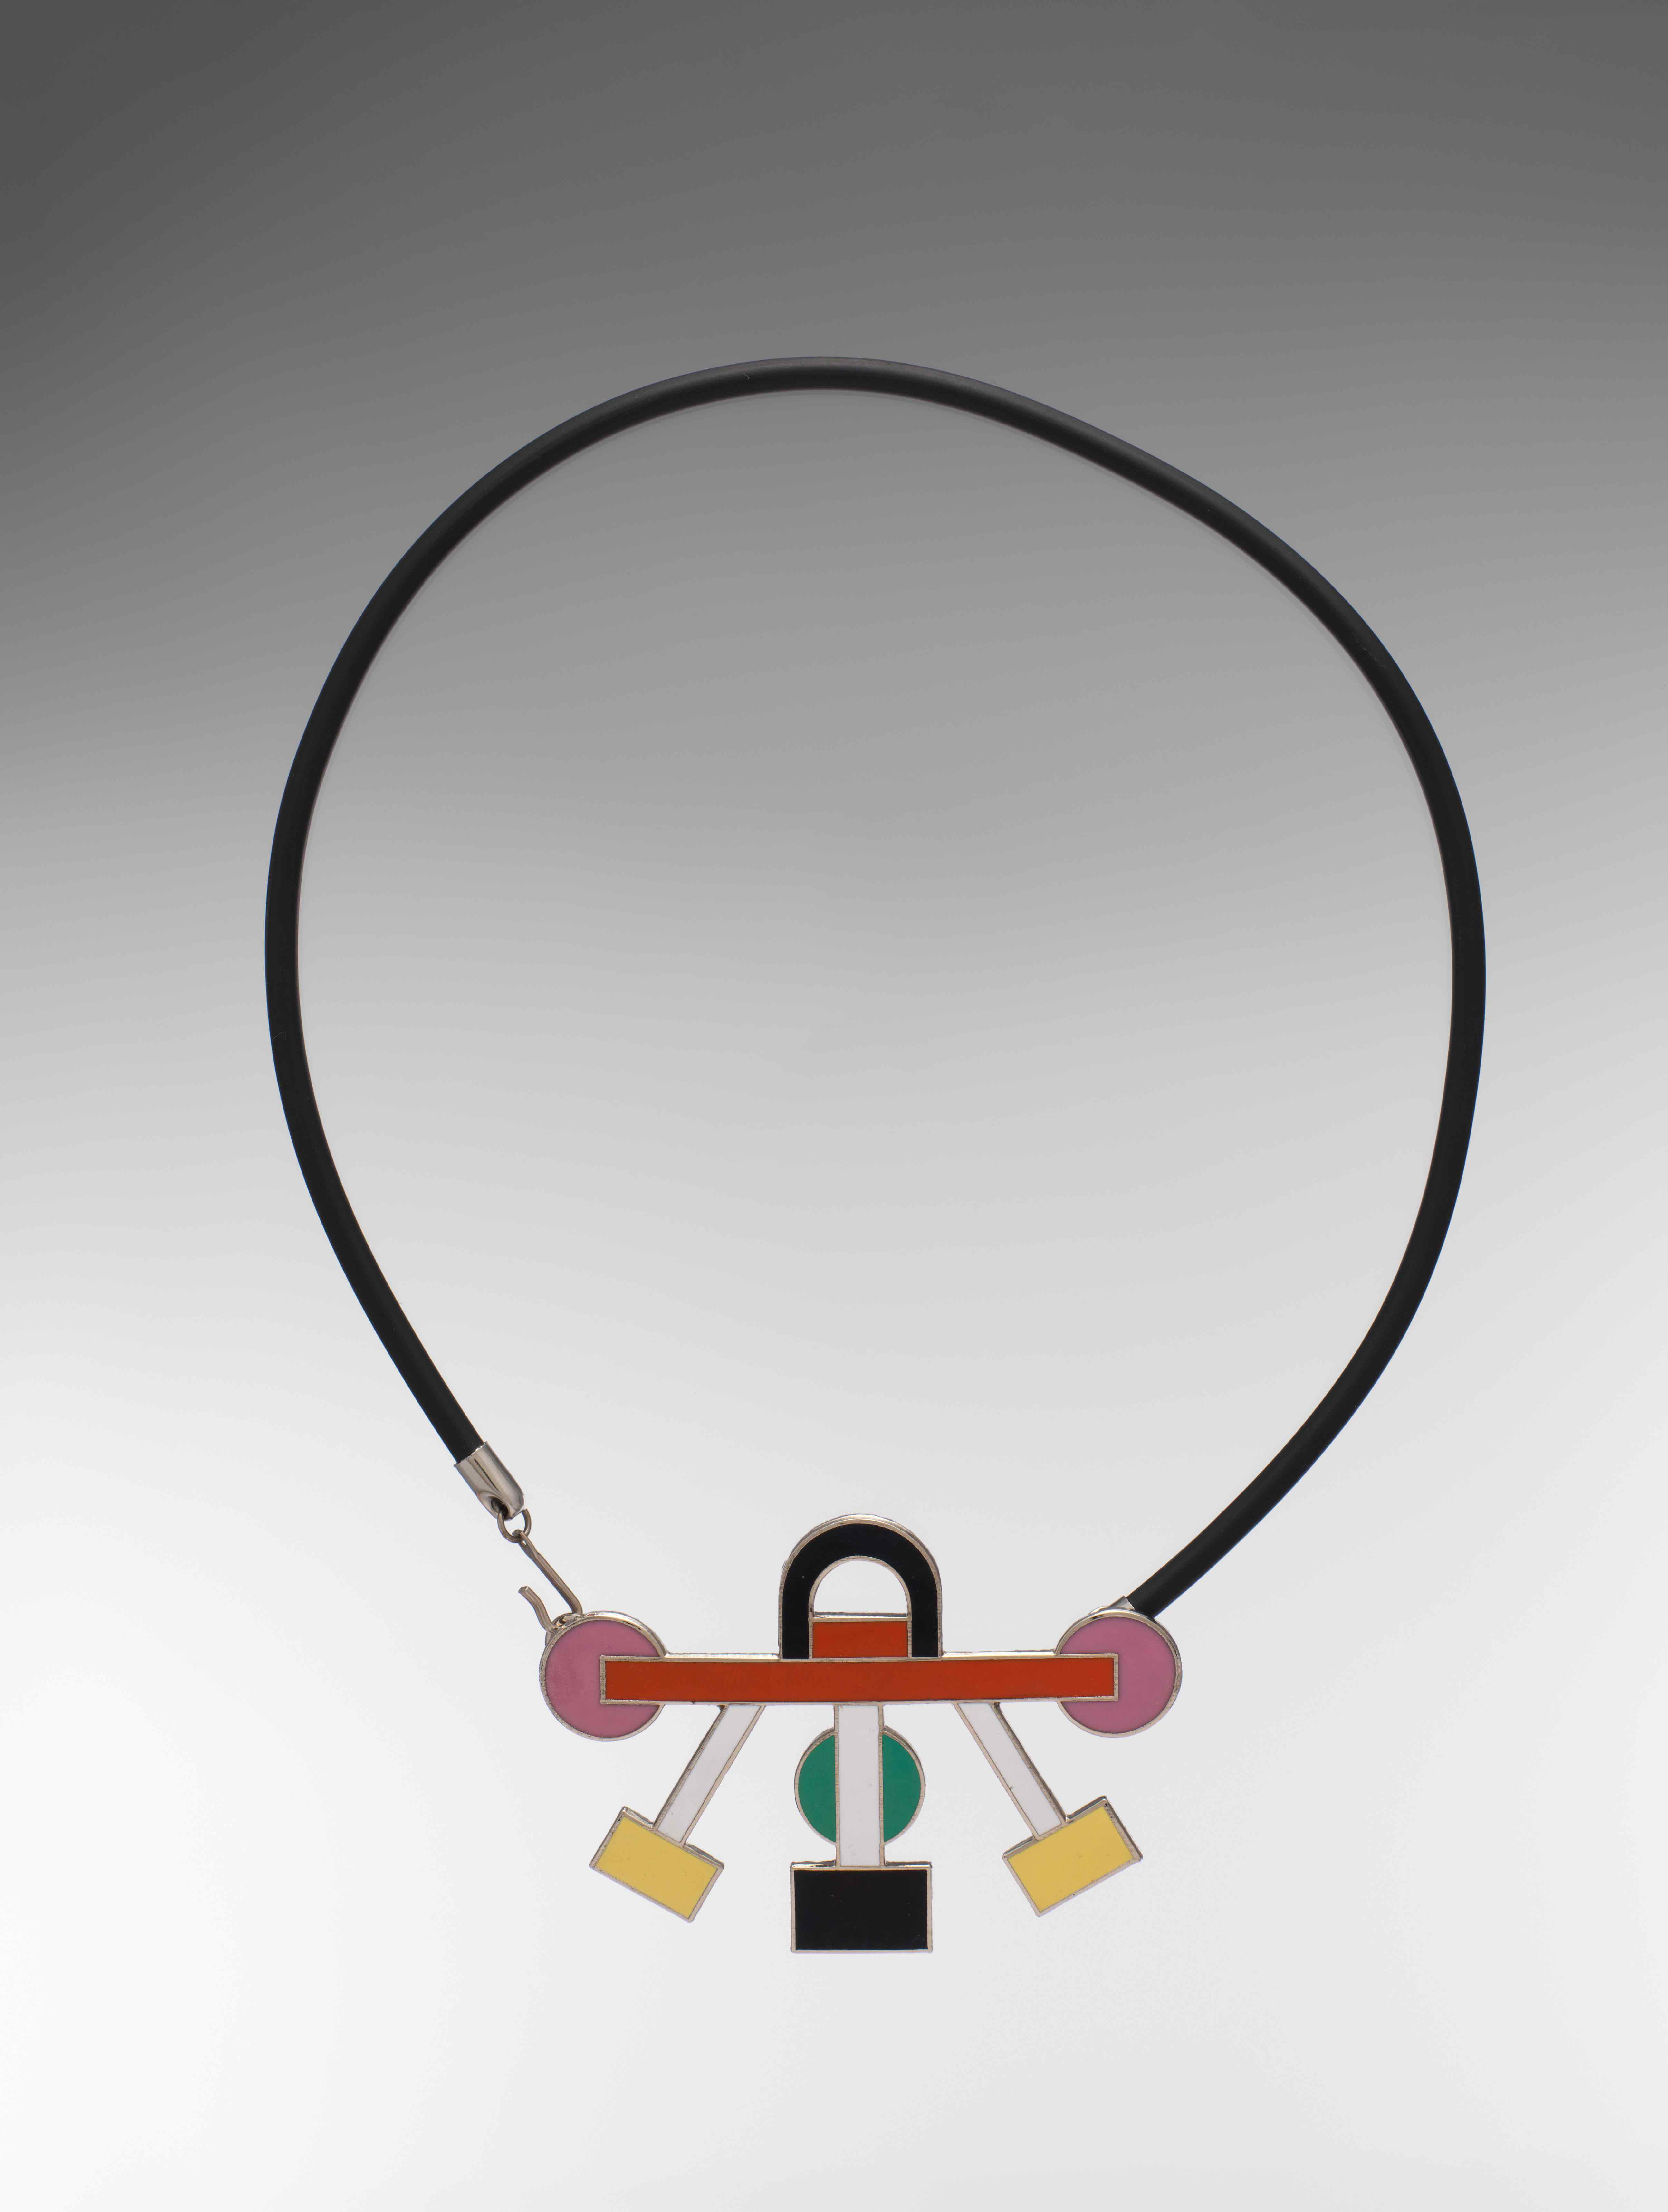 The Euphoria Necklace by Sotsass. Courtesy: Met Breuer